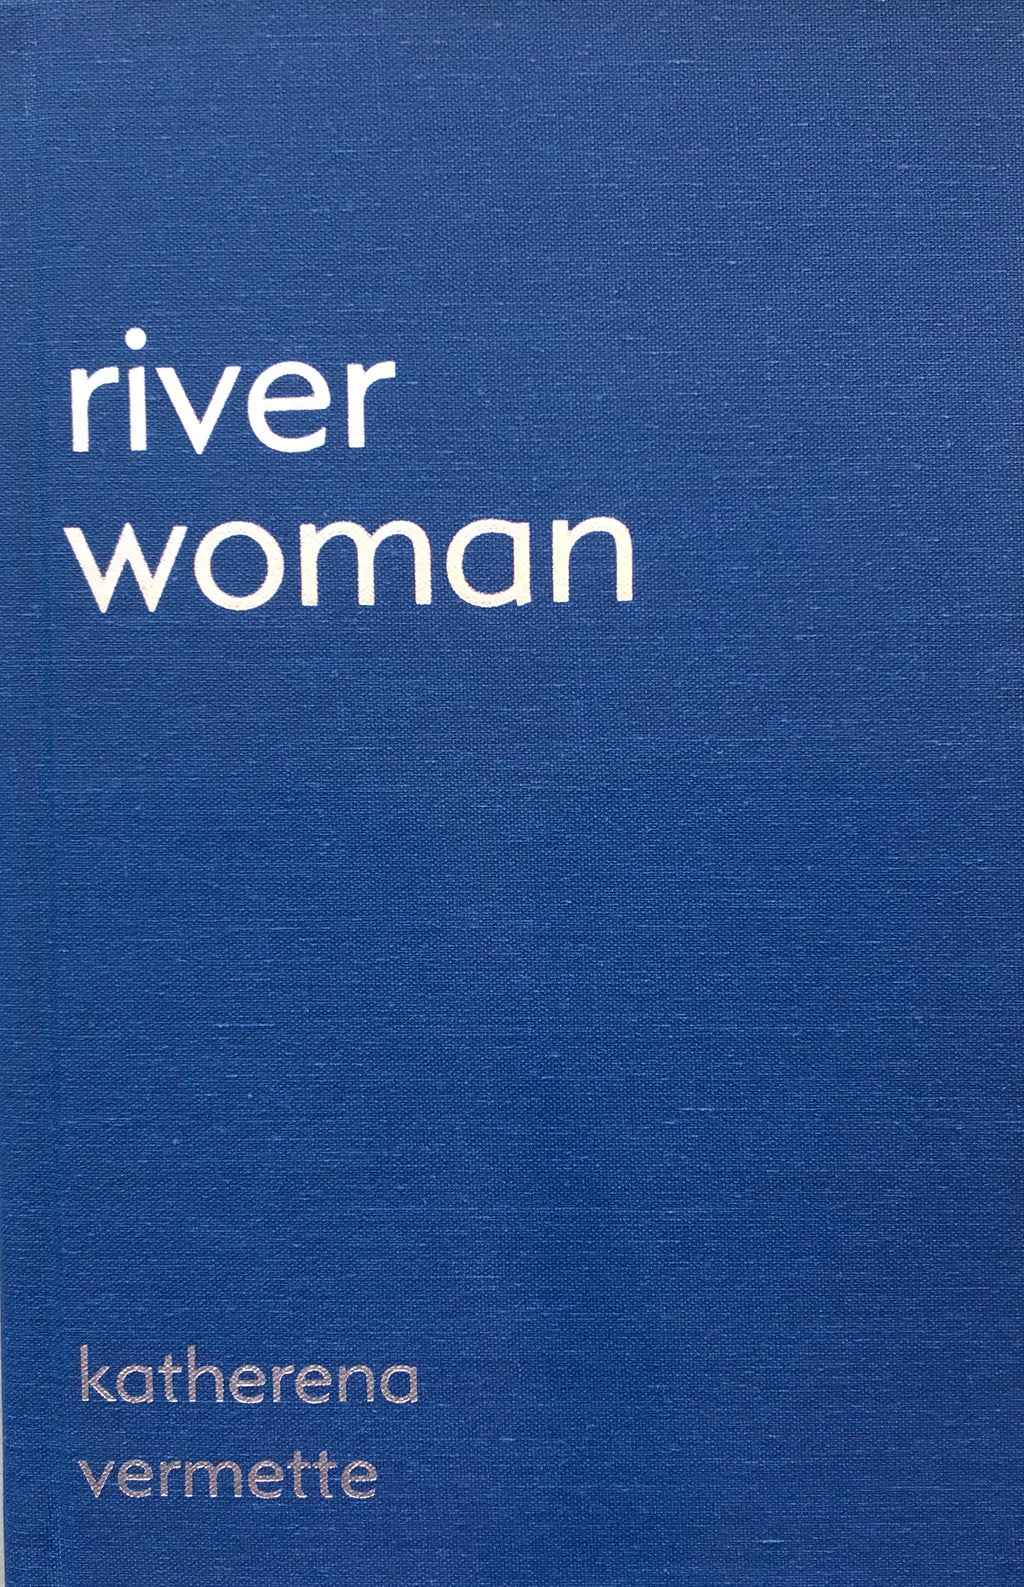 Special Edition of river woman by Katherena Vermette